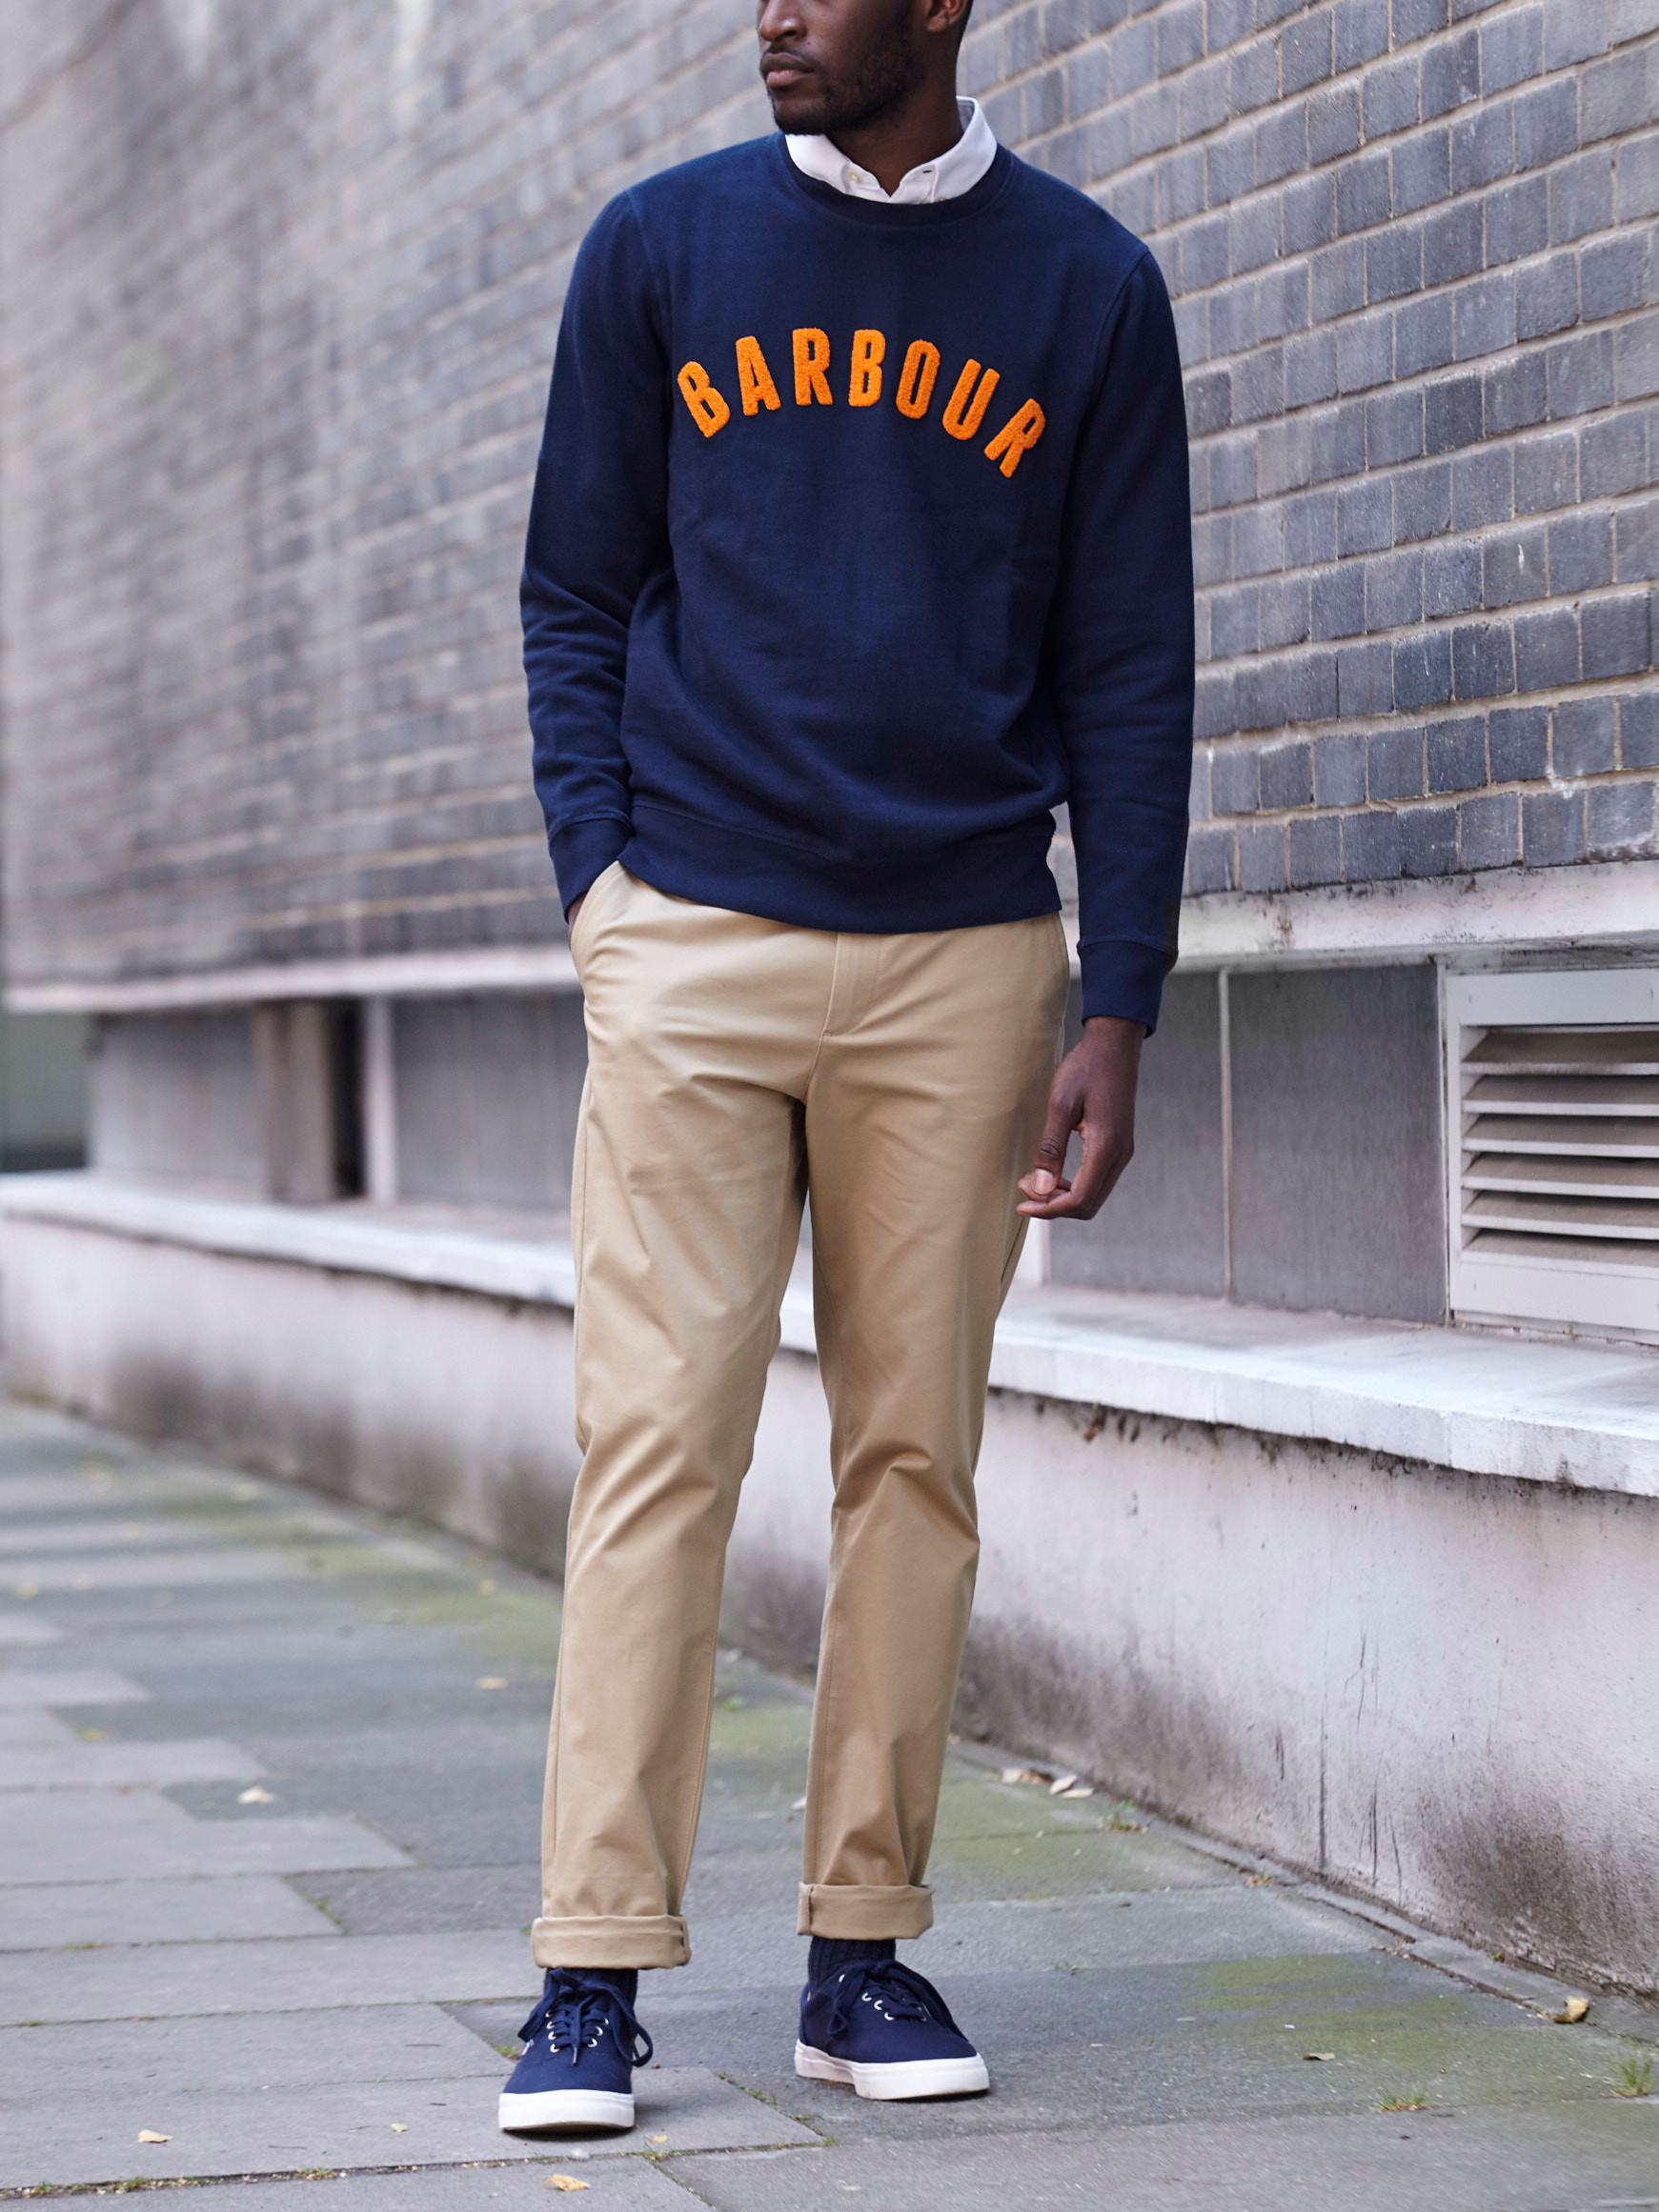 Men's outfit idea for 2021 with logo / printed sweatshirt, stone chinos, neutral sneakers. Suitable for spring and fall.